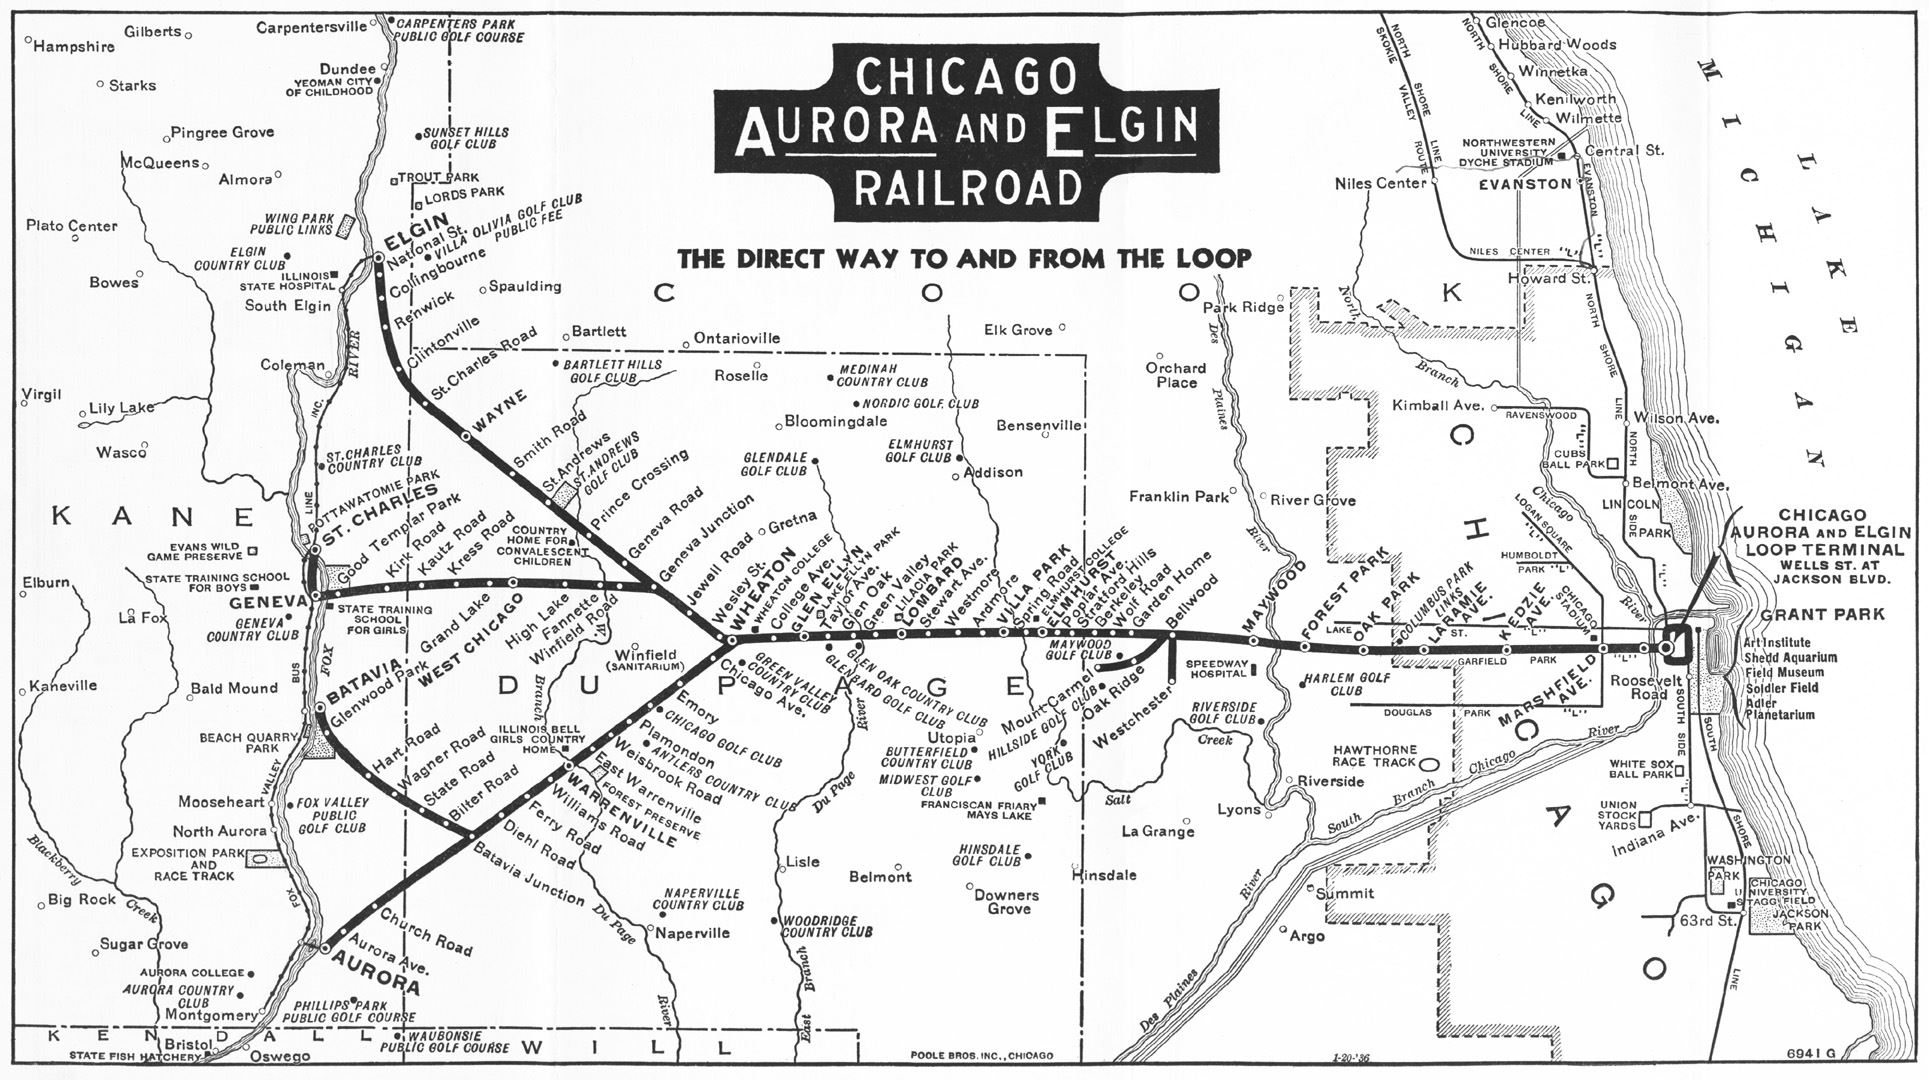 Chicago Aurora and Elgin Railroad 1936 map